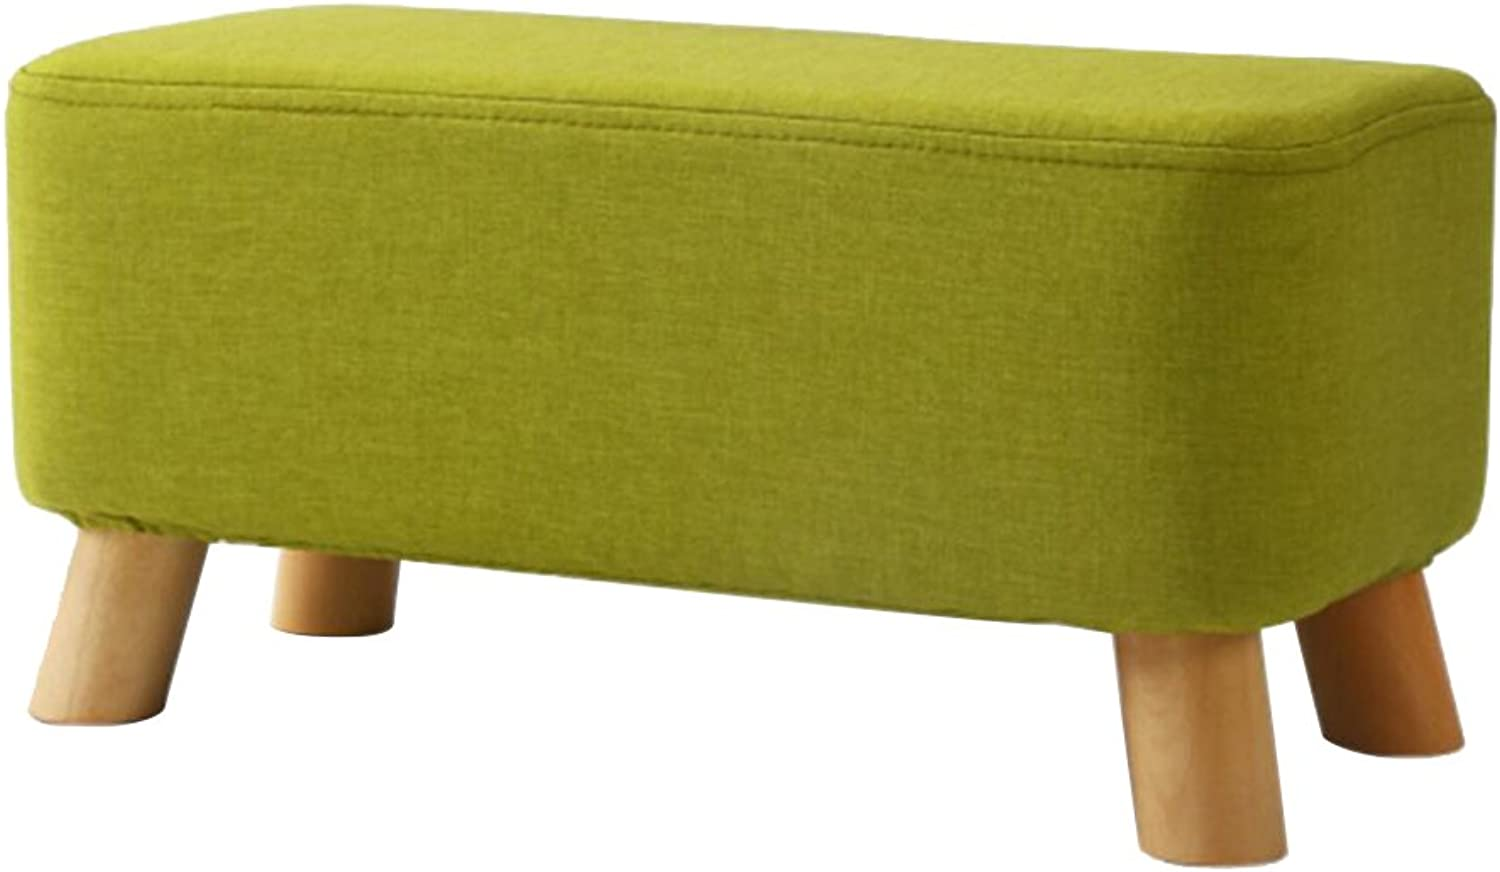 HQCC Bench Living Room Solid Wood Stool Simple Creative wear shoes Bench Fabric Sofa Bench Rectangular pier-Green (color   Green)